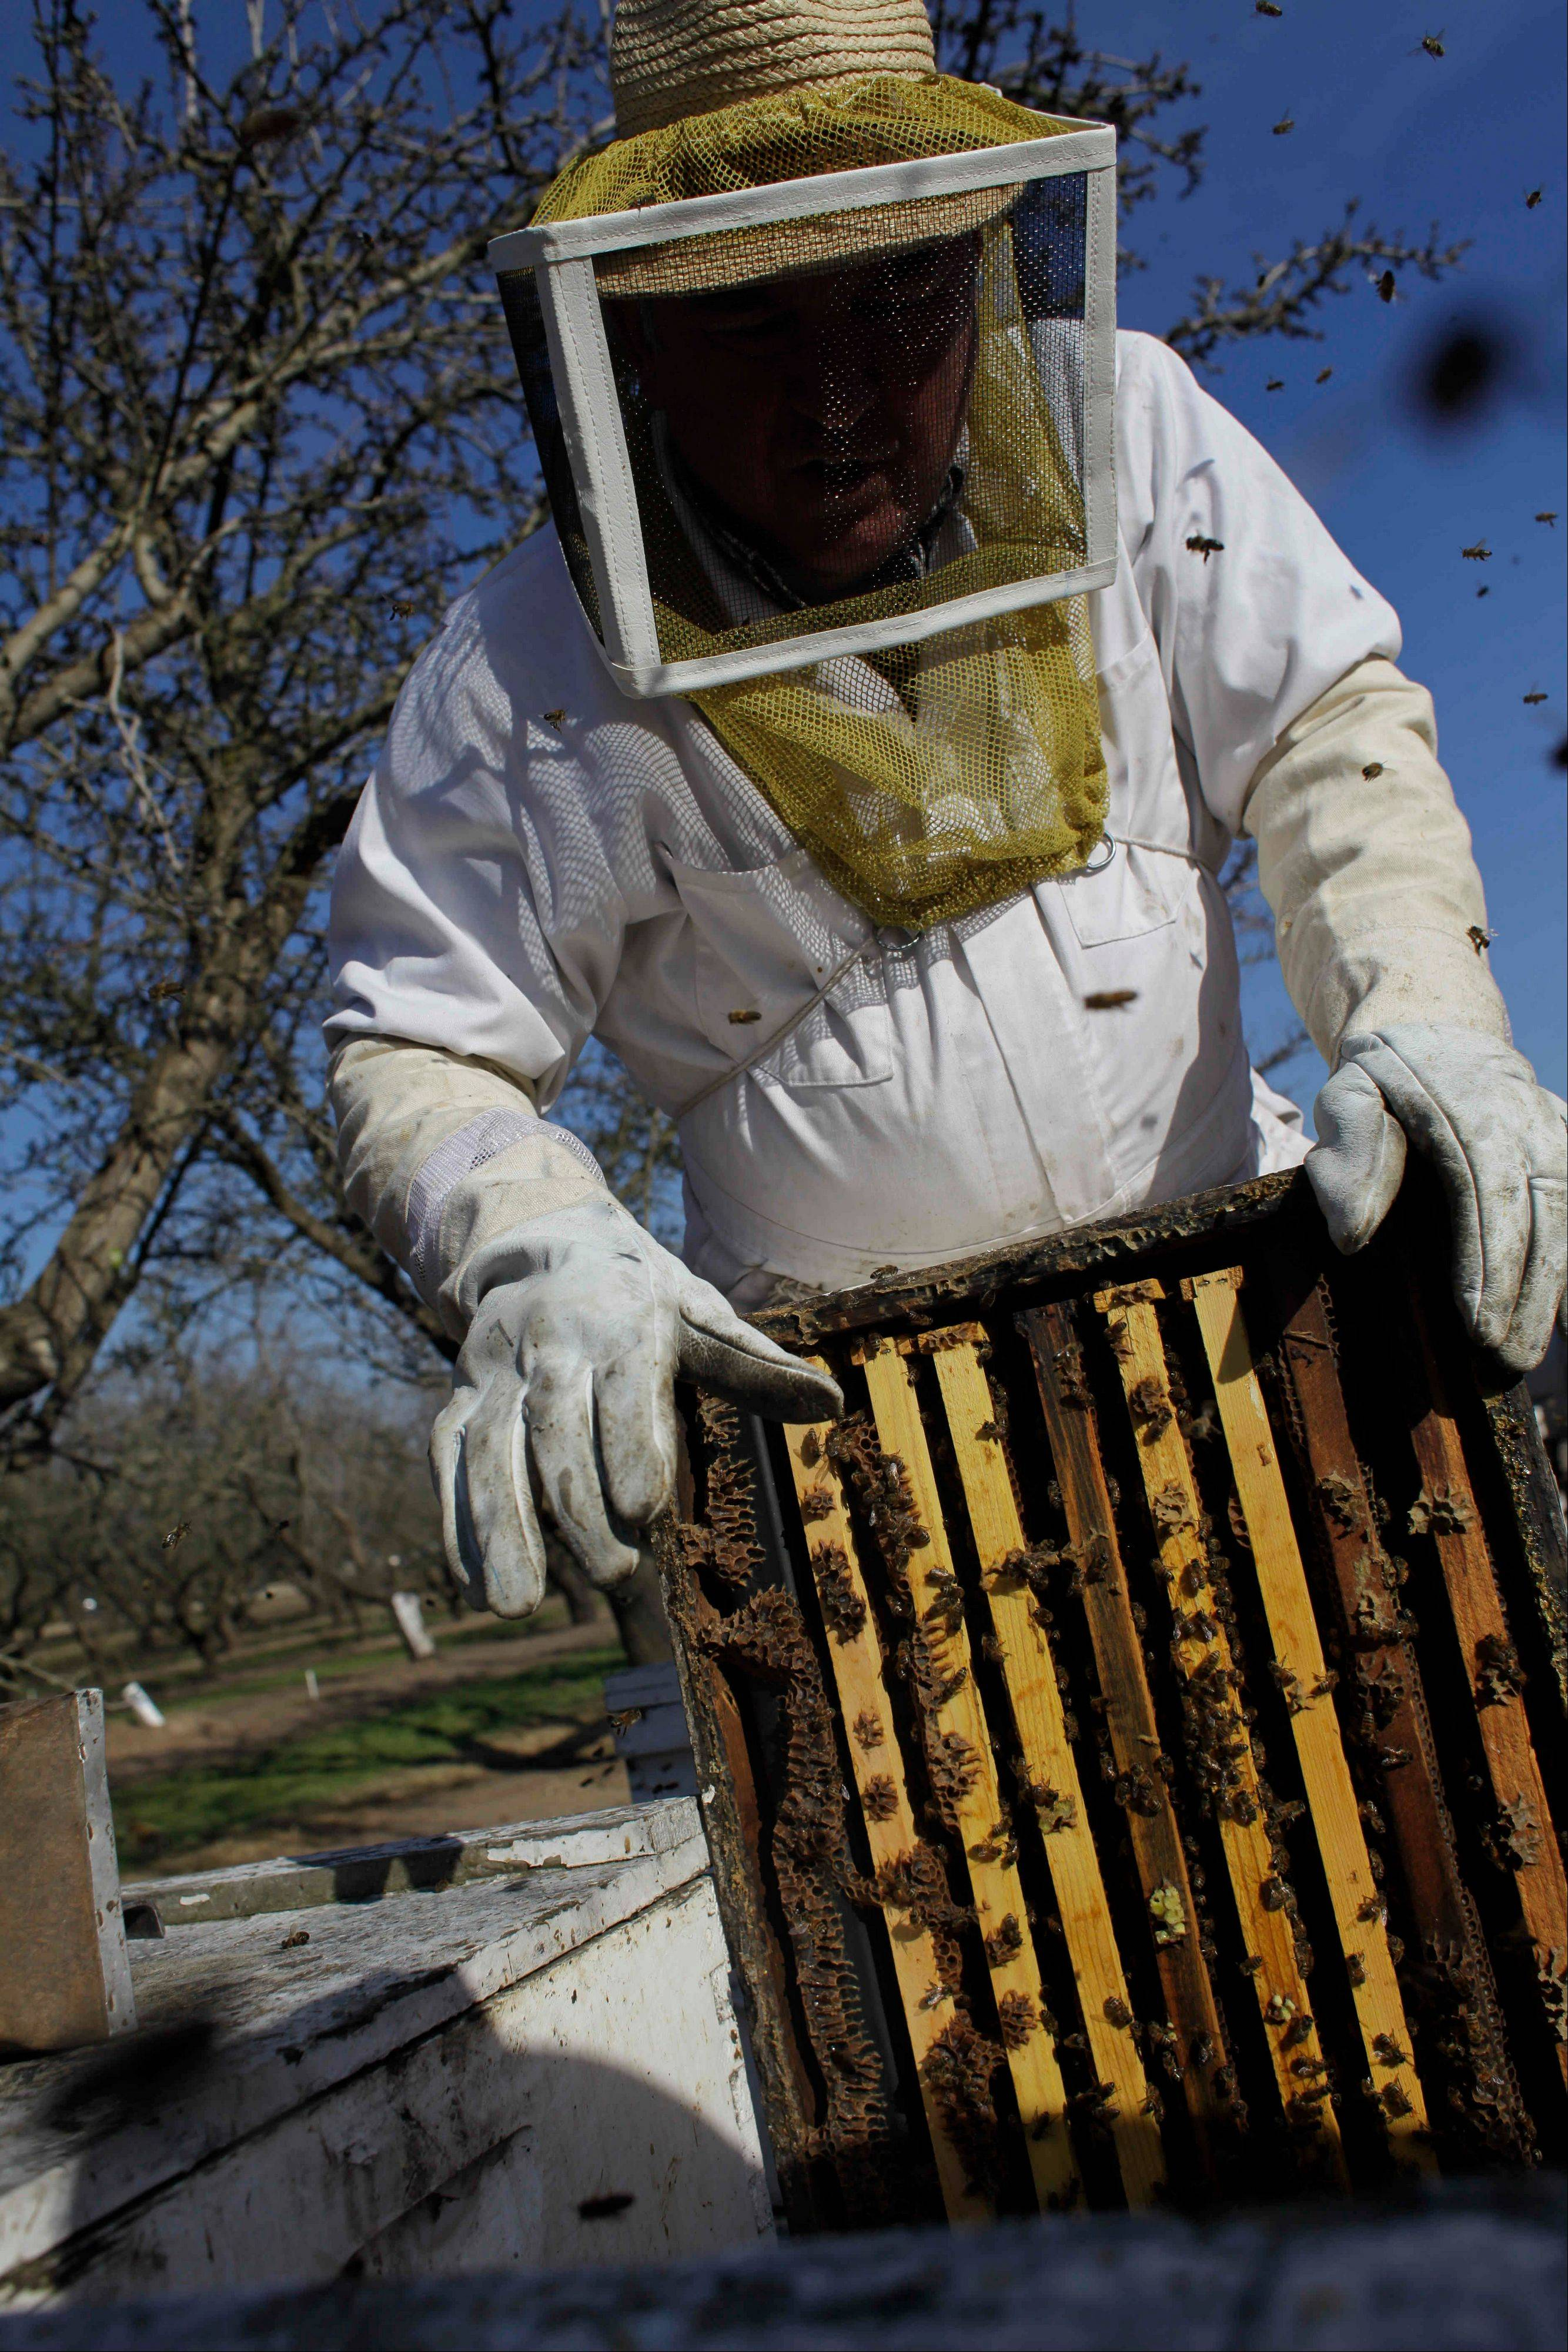 Bee inspector Neil Trent of Scientific Ag Co., inspects a frame of bees Tuesday to assess the colony strength, near Turlock, Calif.